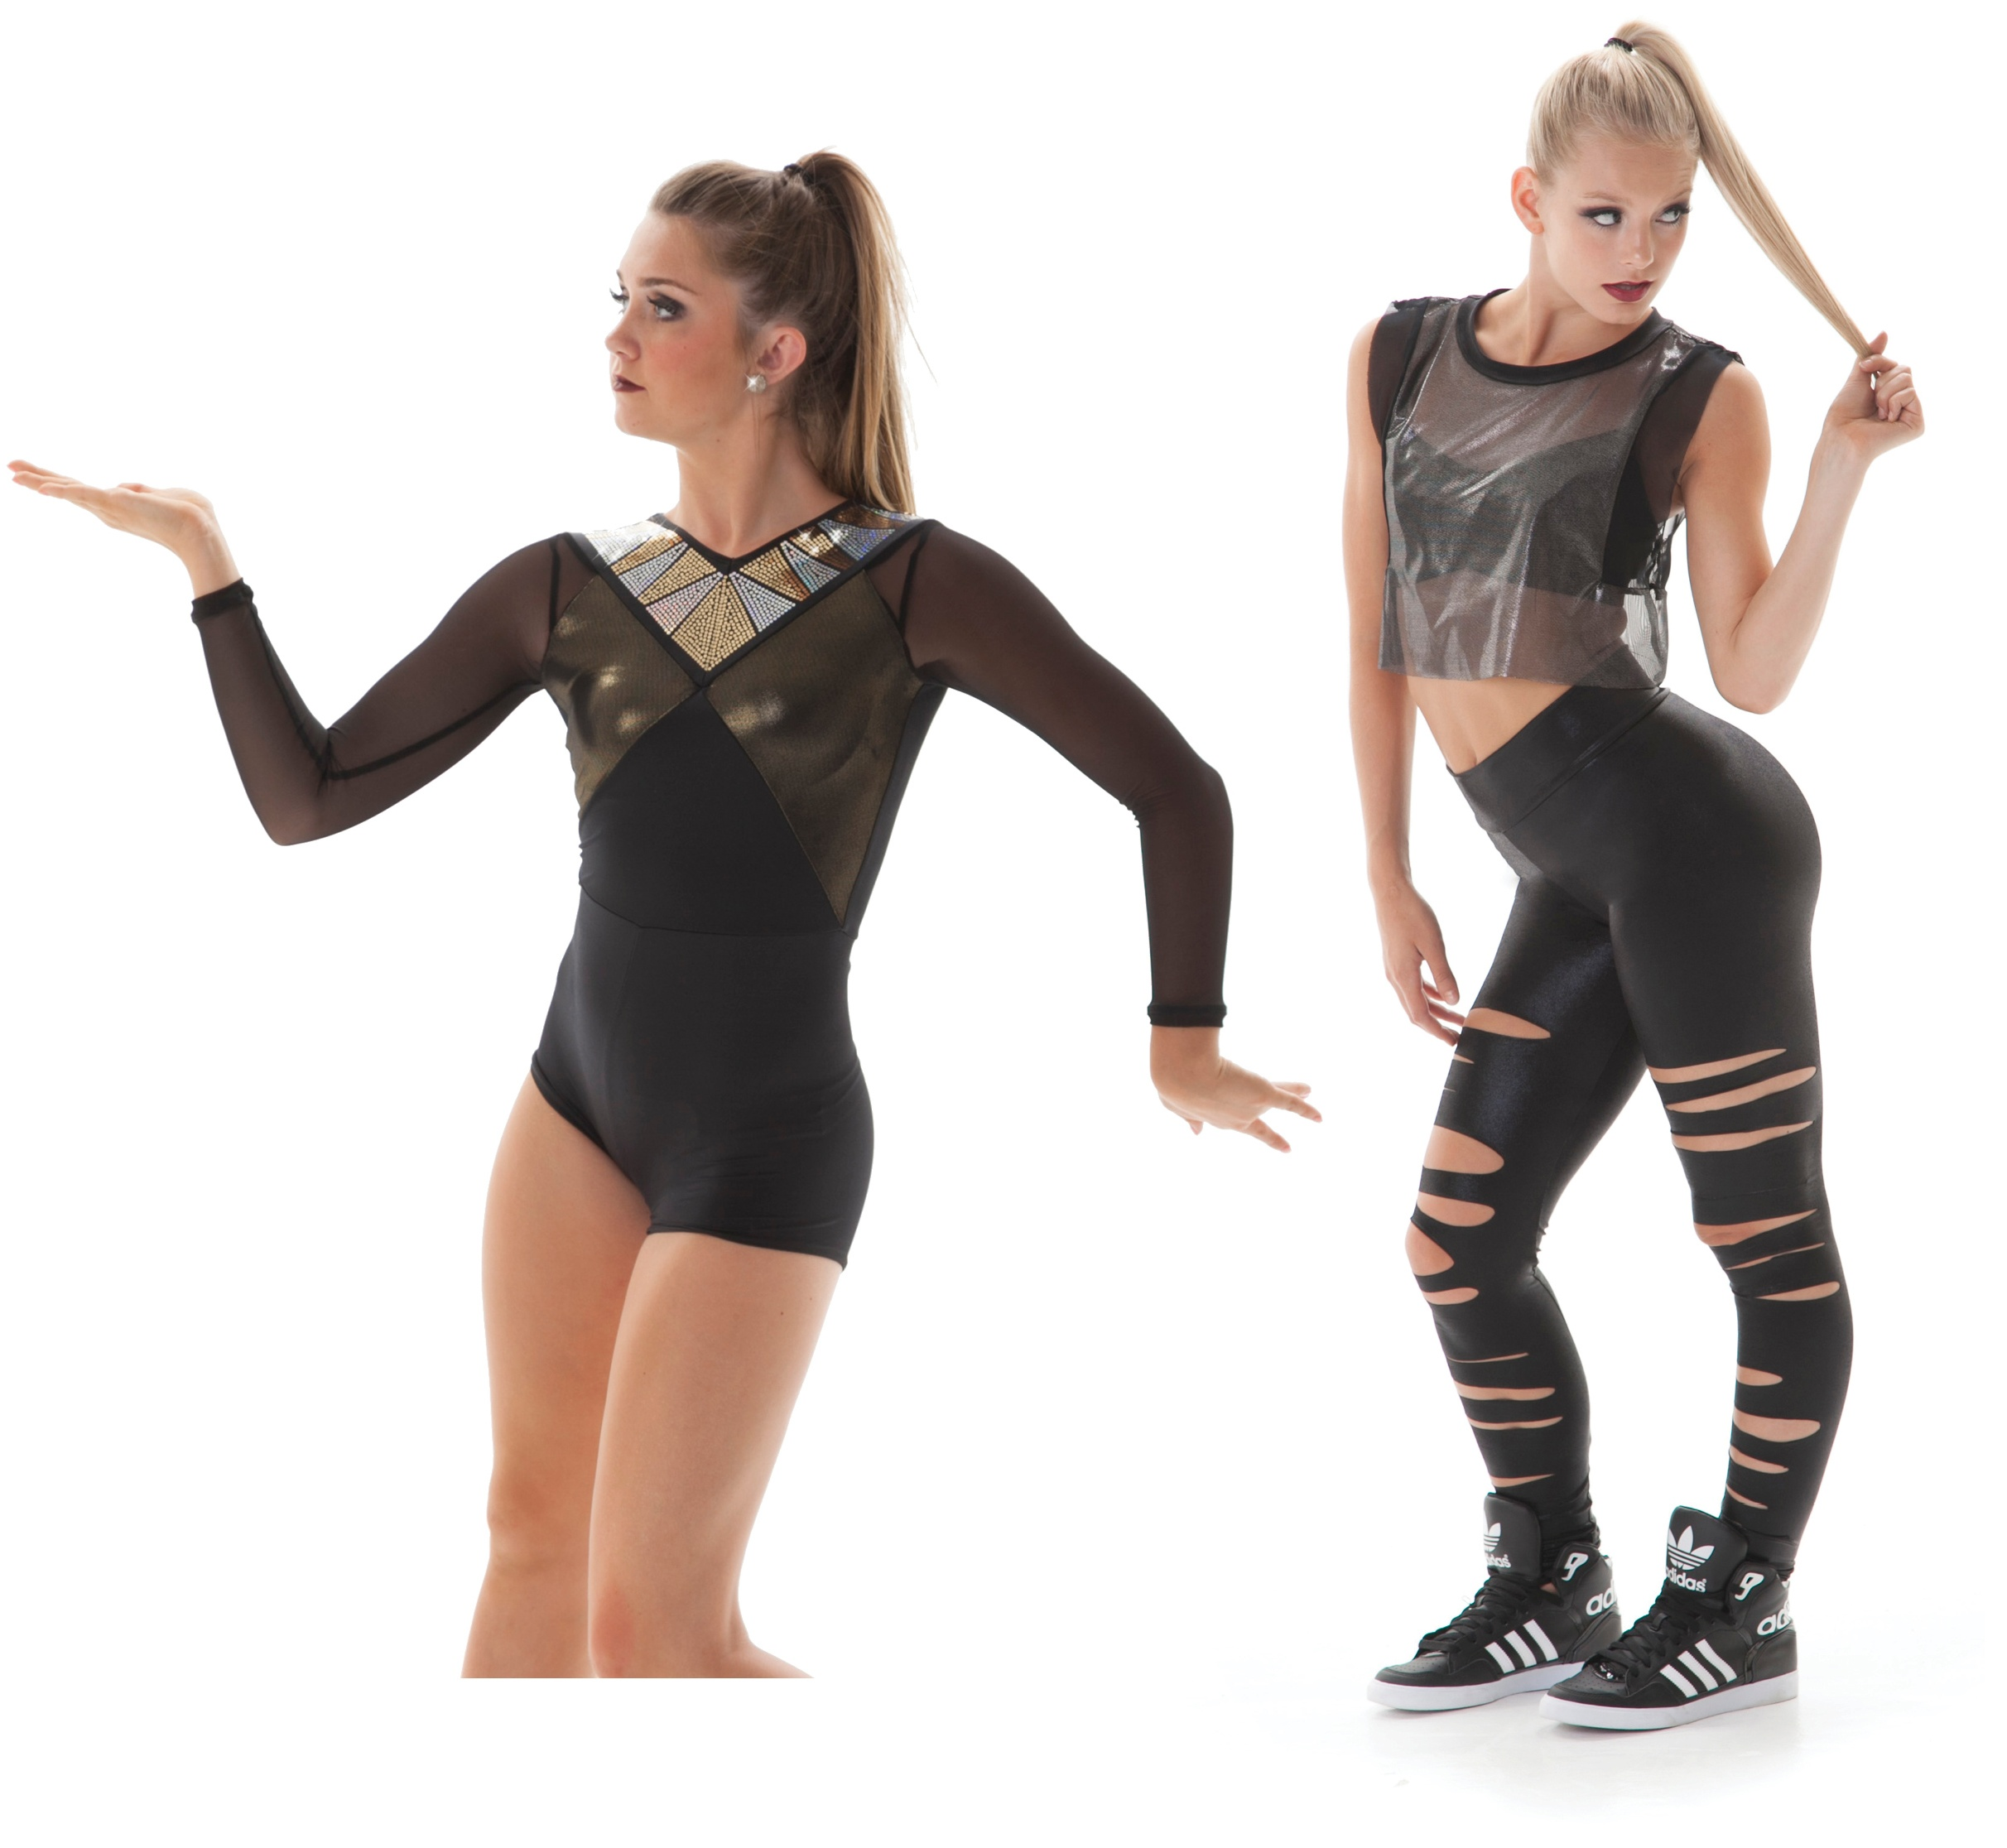 Cleopatra dance costume and lady gaga dance costume